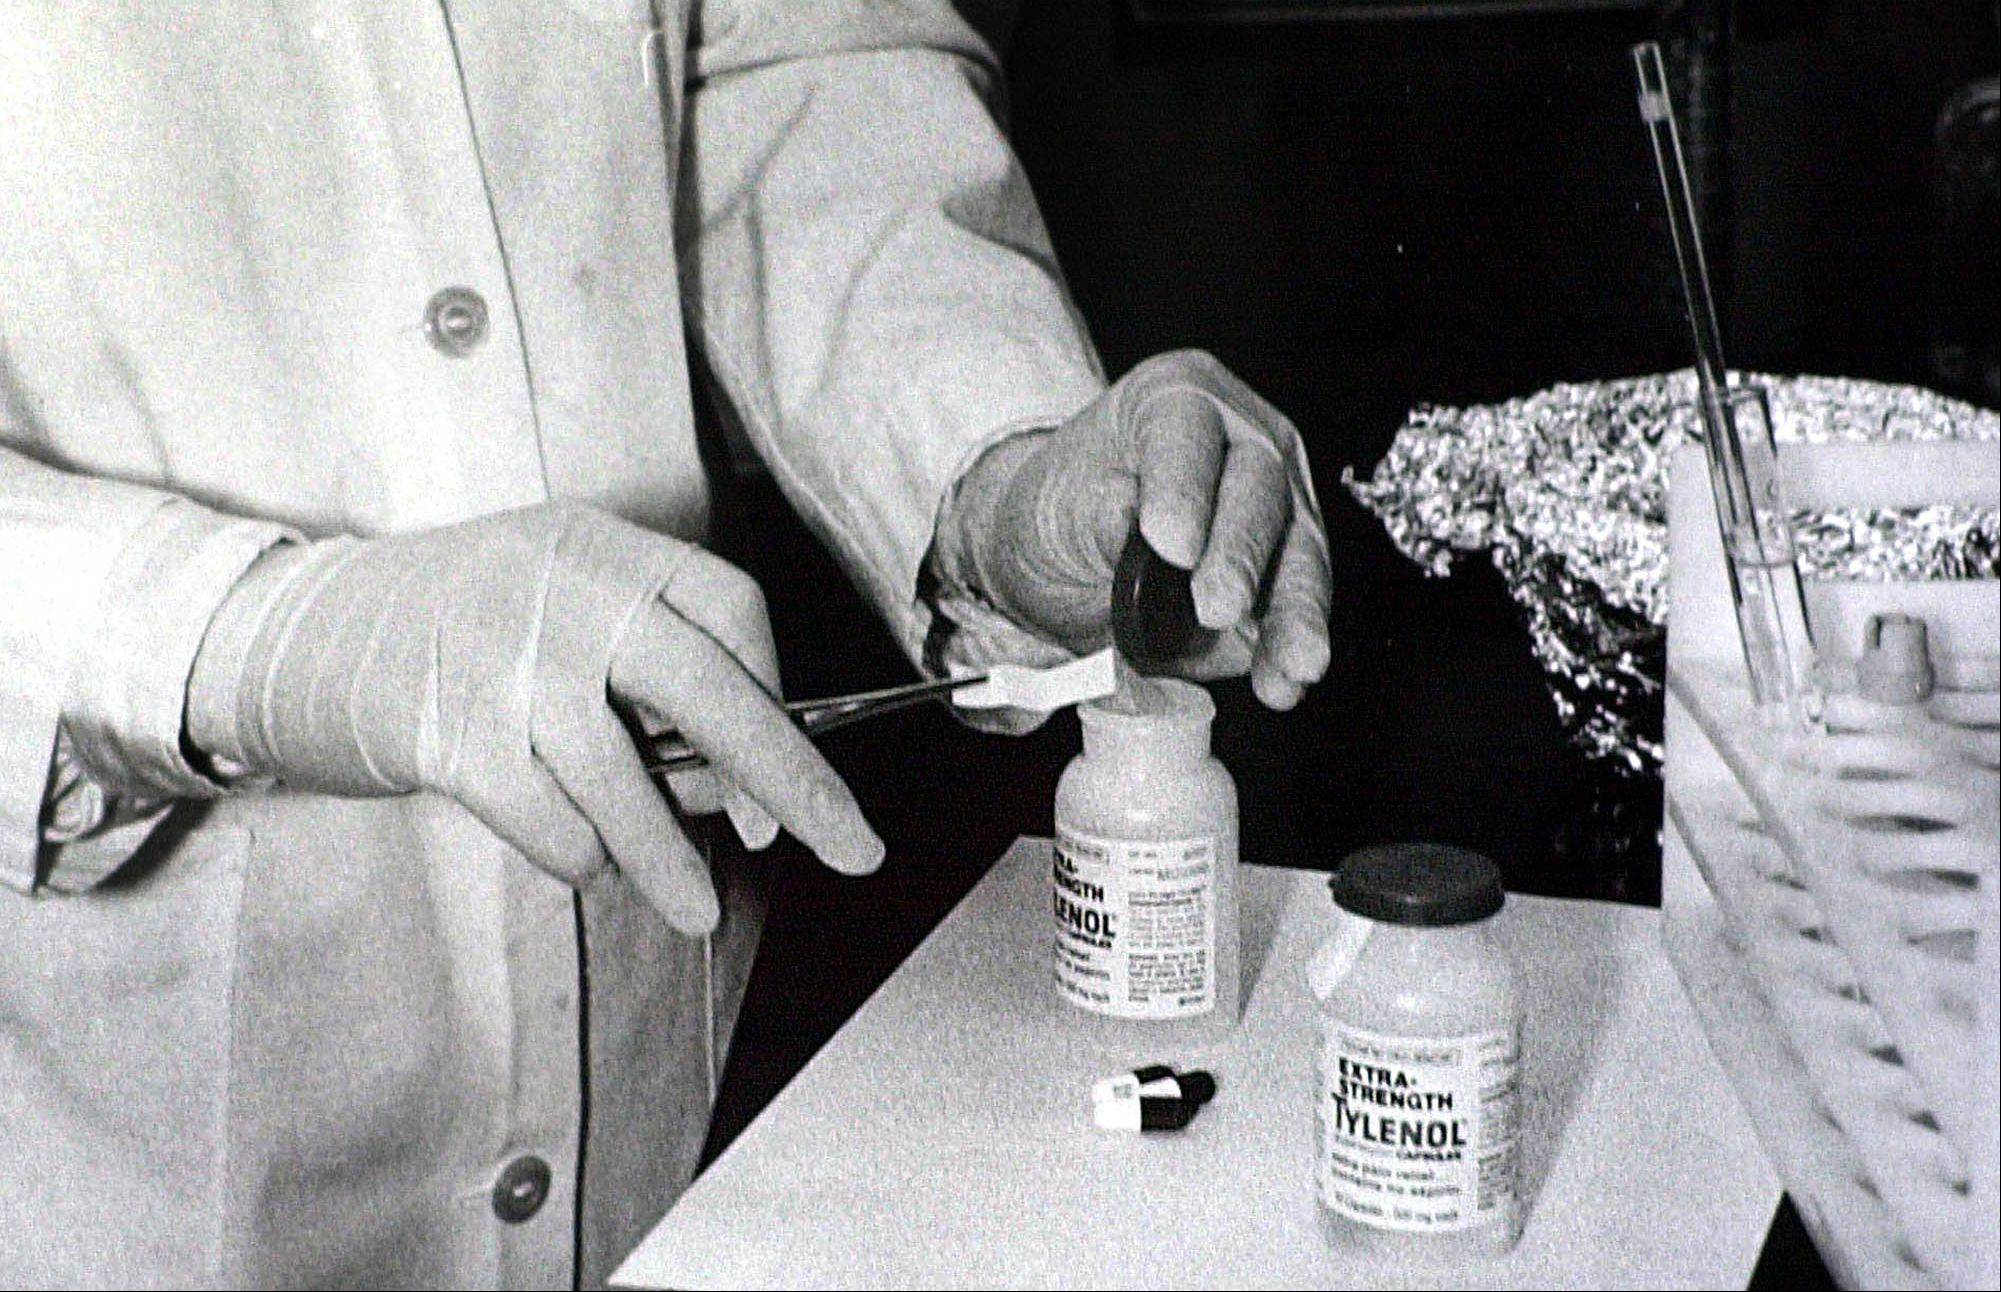 Bottles of Extra-Strength Tylenol were tested with a chemically treated paper that turns blue in the presence of cyanide at the Illinois Department of Health in October 1982 in Chicago.